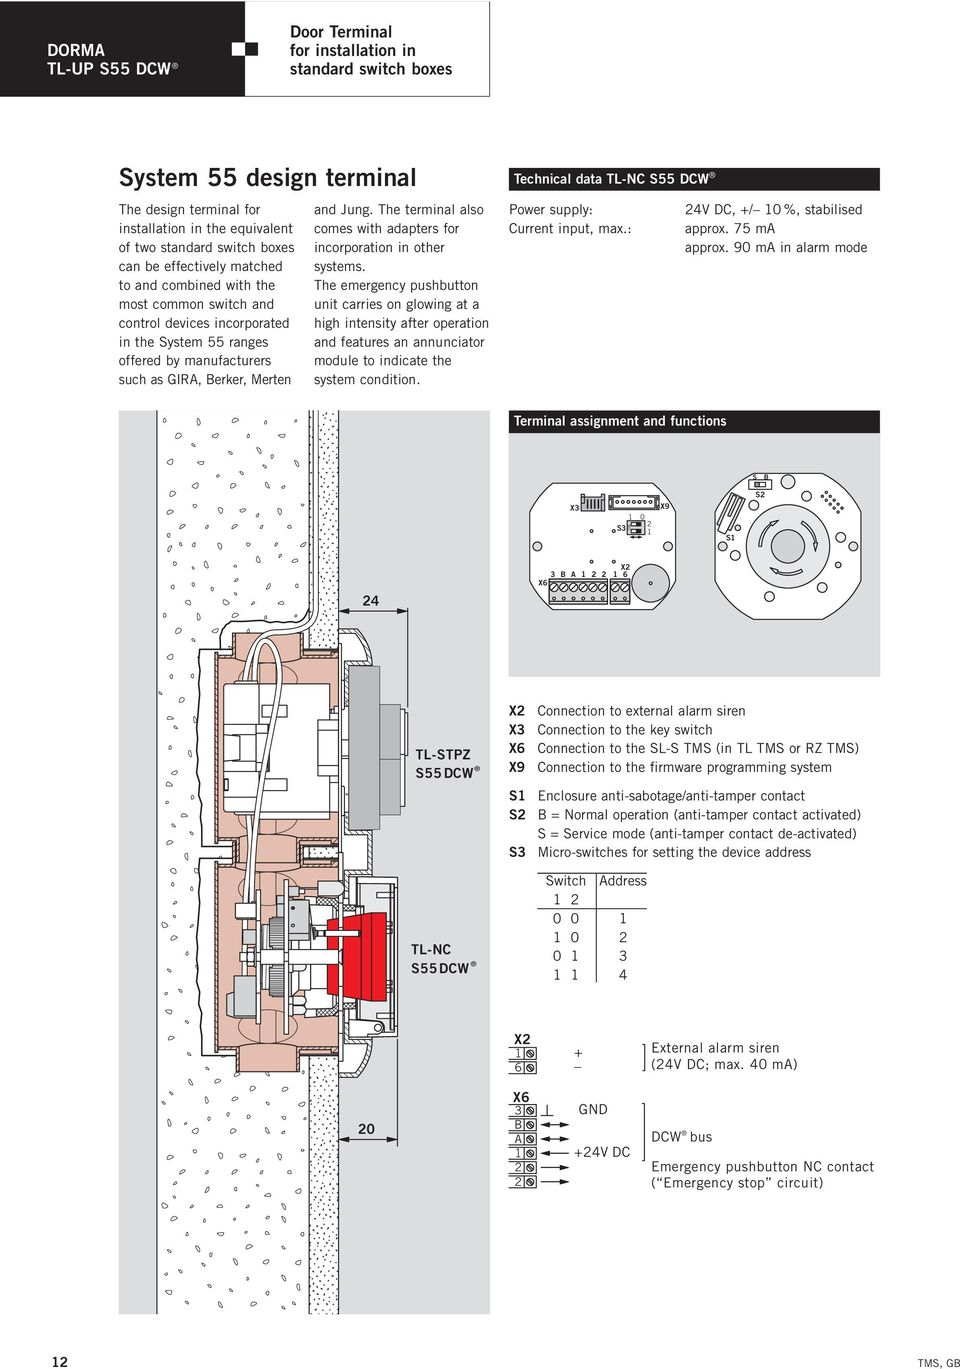 Door Management System Dorma Tms Pdf Svp Siren Wiring Diagram The Terminal Also Comes With Adapters For Incorporation In Other Systems